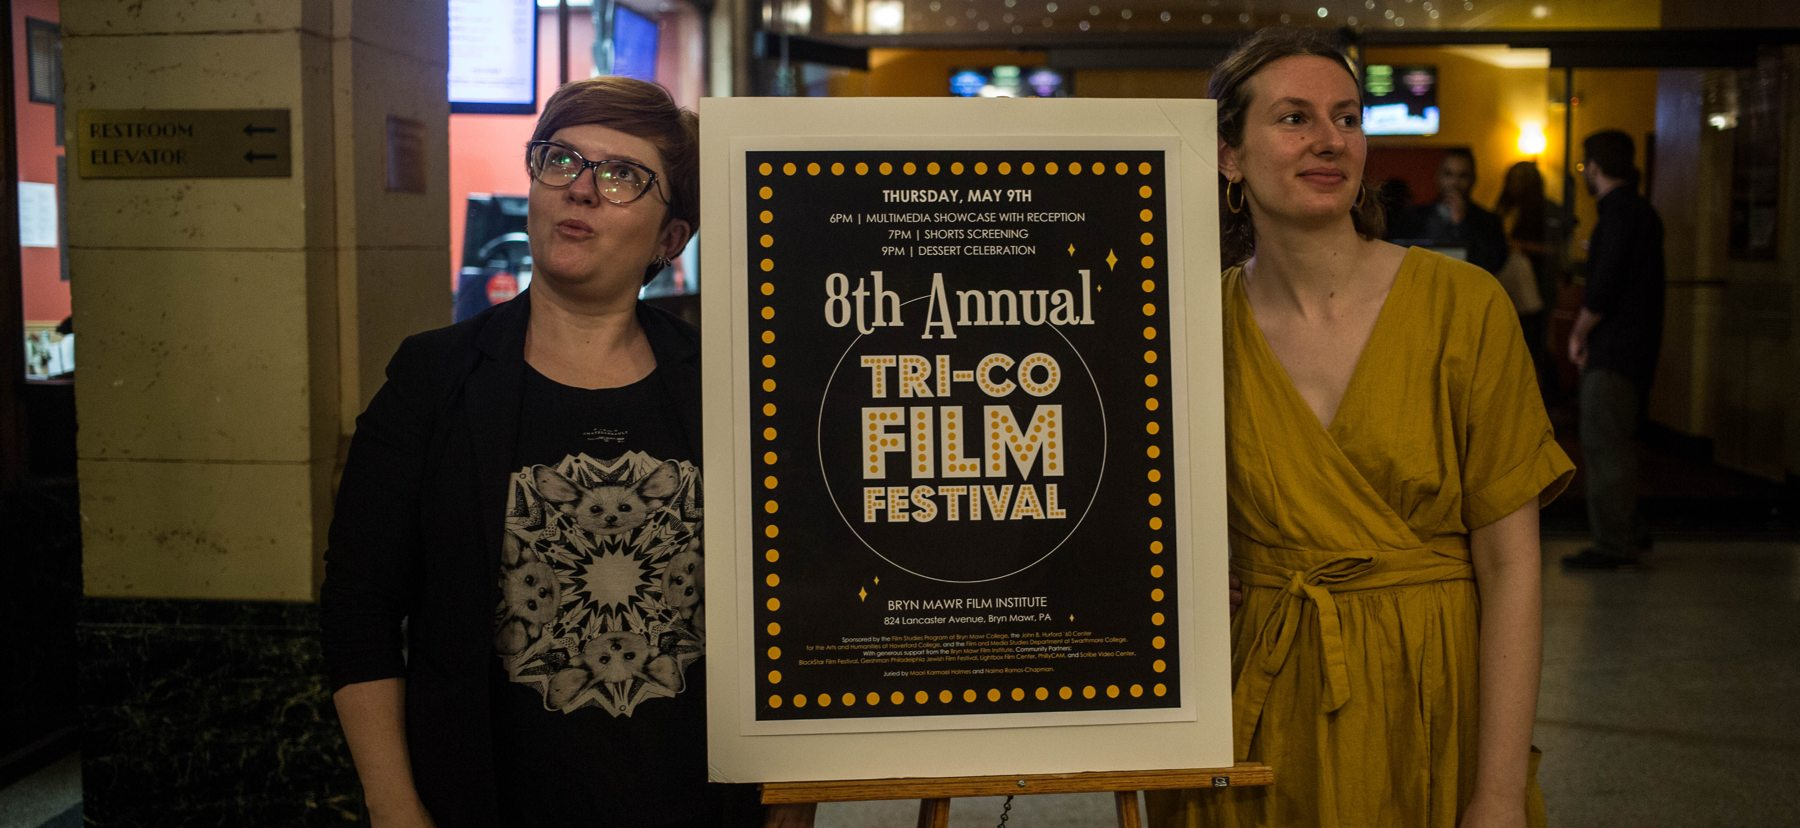 two women stand on either side of a sign promoting a film festival